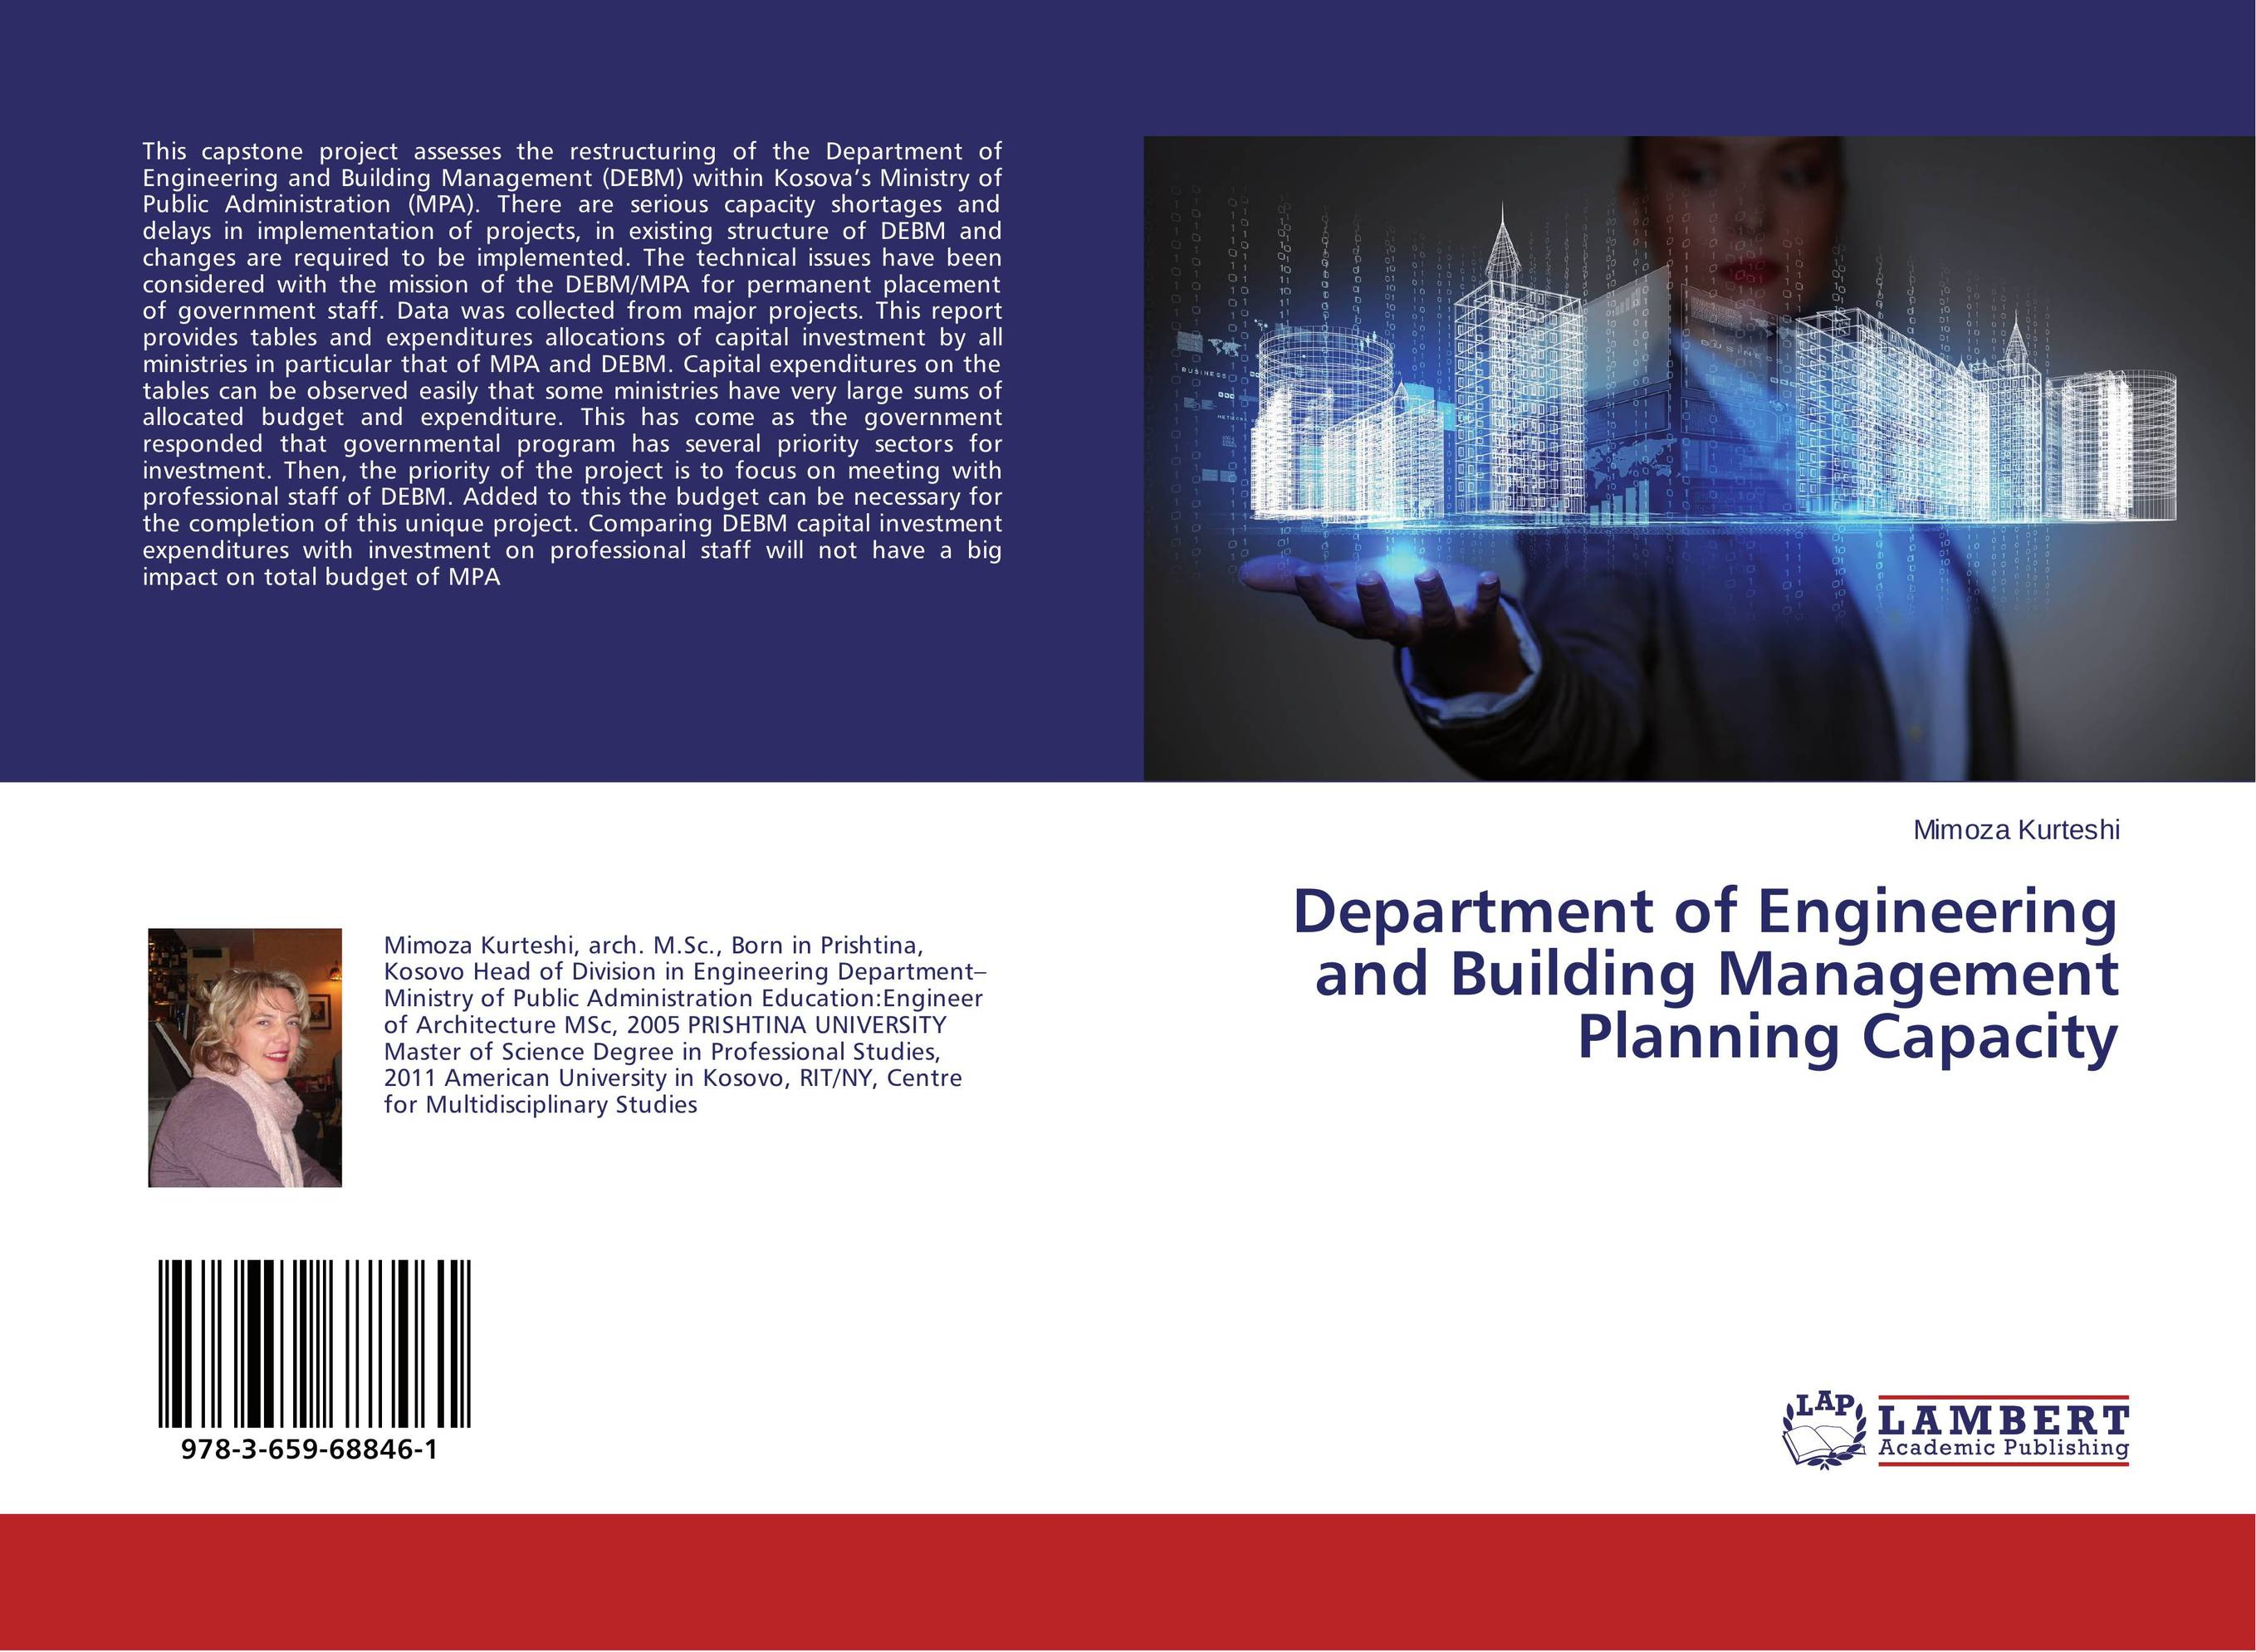 Department of Engineering and Building Management Planning Capacity the strategic management of large engineering projects – shaping institutions risks